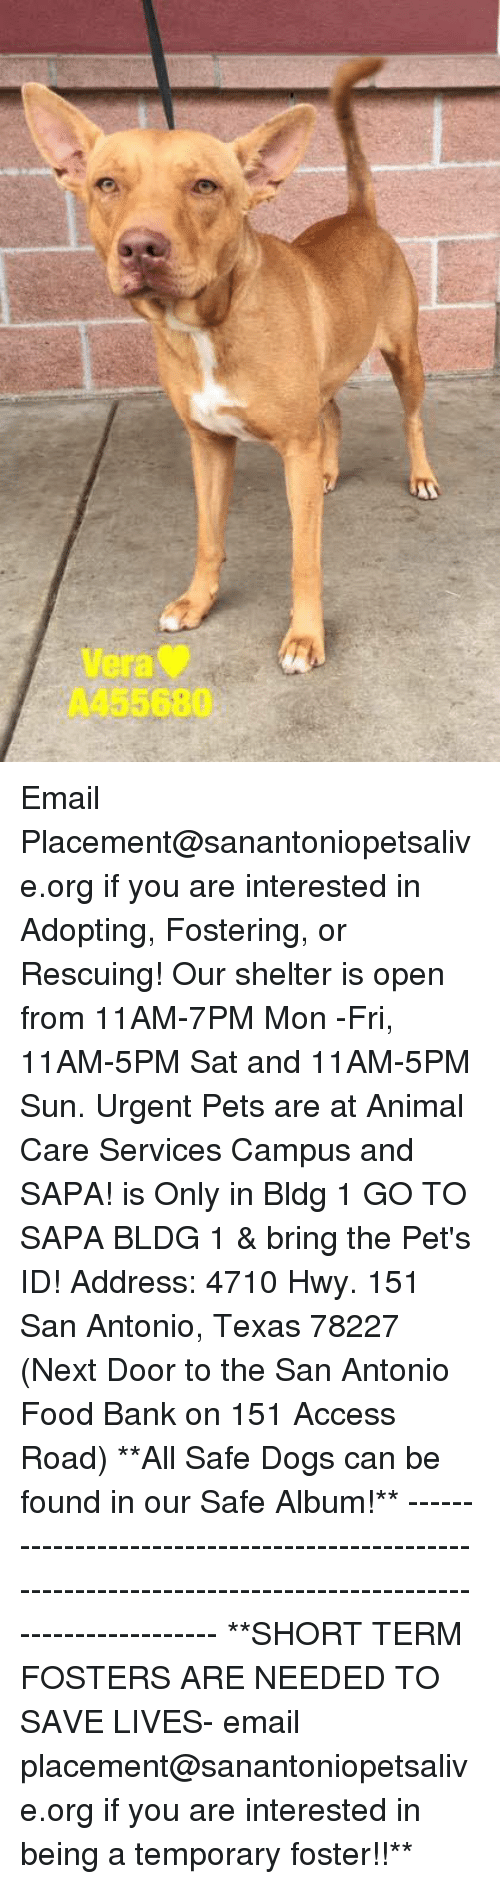 Dogs, Food, and Memes: era  A455680 Email Placement@sanantoniopetsalive.org if you are interested in Adopting, Fostering, or Rescuing!  Our shelter is open from 11AM-7PM Mon -Fri, 11AM-5PM Sat and 11AM-5PM Sun.  Urgent Pets are at Animal Care Services Campus and SAPA! is Only in Bldg 1 GO TO SAPA BLDG 1 & bring the Pet's ID! Address: 4710 Hwy. 151 San Antonio, Texas 78227 (Next Door to the San Antonio Food Bank on 151 Access Road)  **All Safe Dogs can be found in our Safe Album!** ---------------------------------------------------------------------------------------------------------- **SHORT TERM FOSTERS ARE NEEDED TO SAVE LIVES- email placement@sanantoniopetsalive.org if you are interested in being a temporary foster!!**